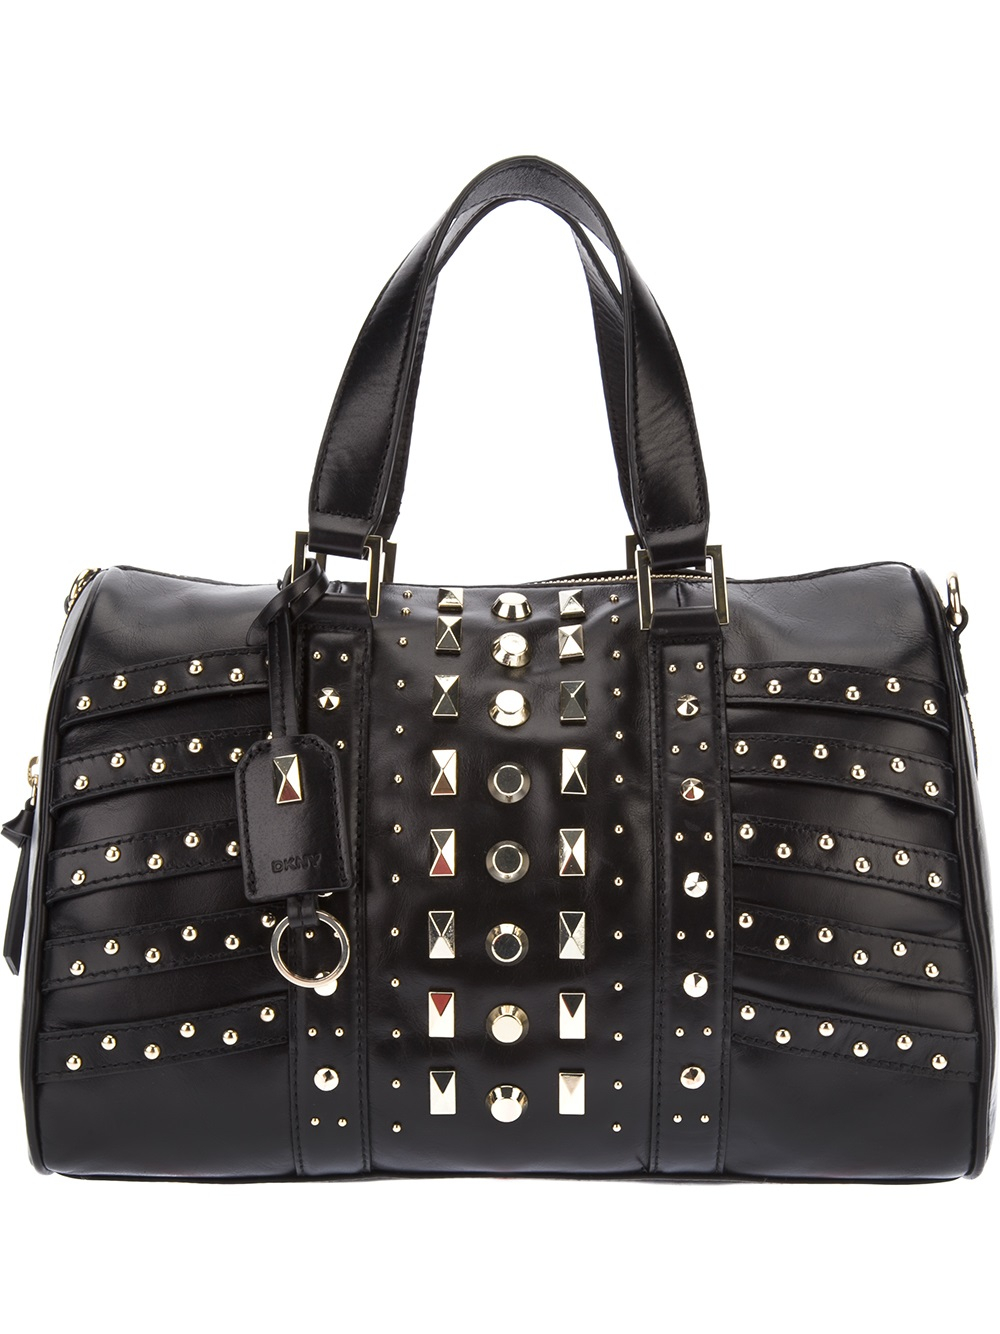 DKNY Studded Tote in Black